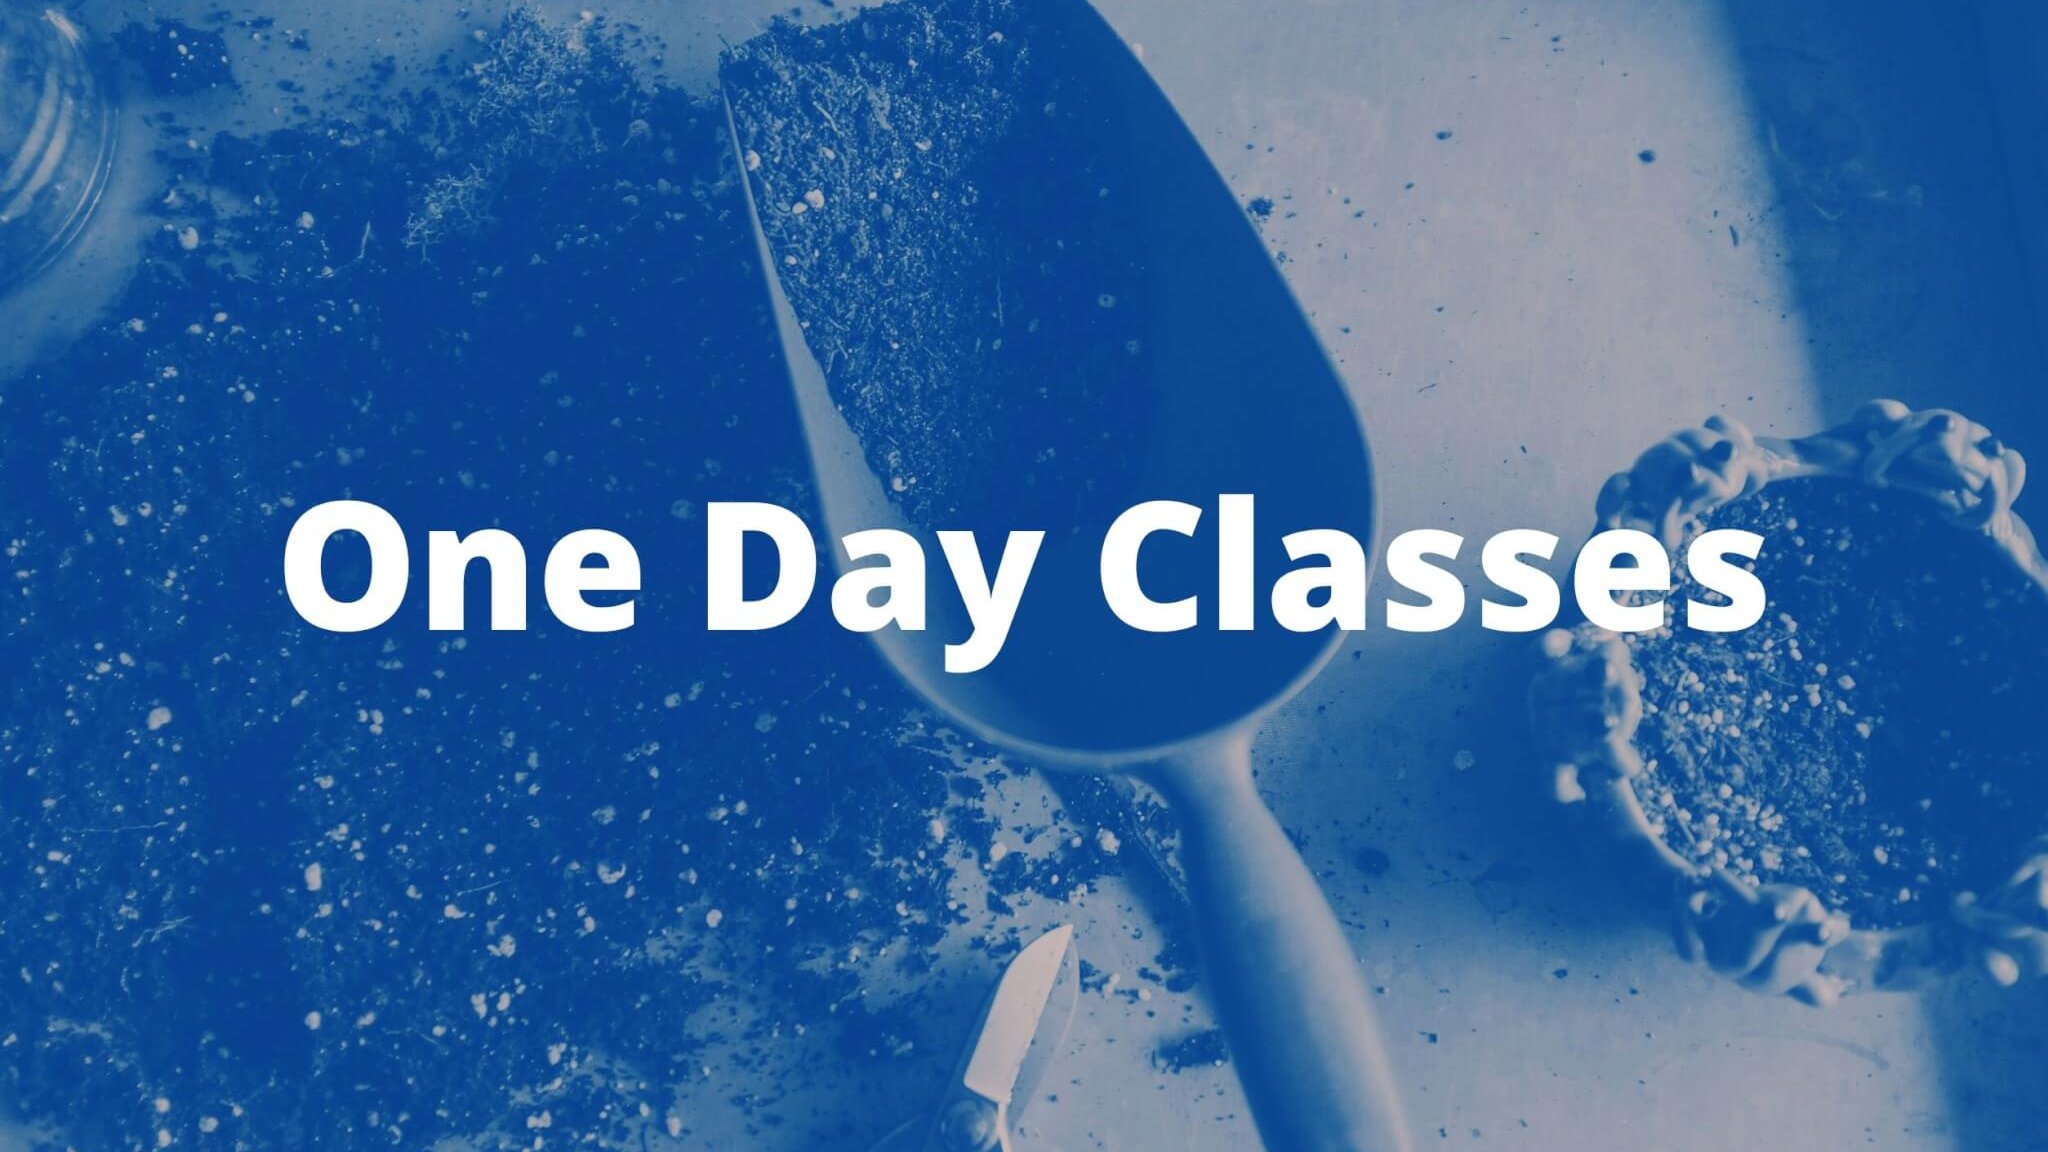 One Day Classes banner